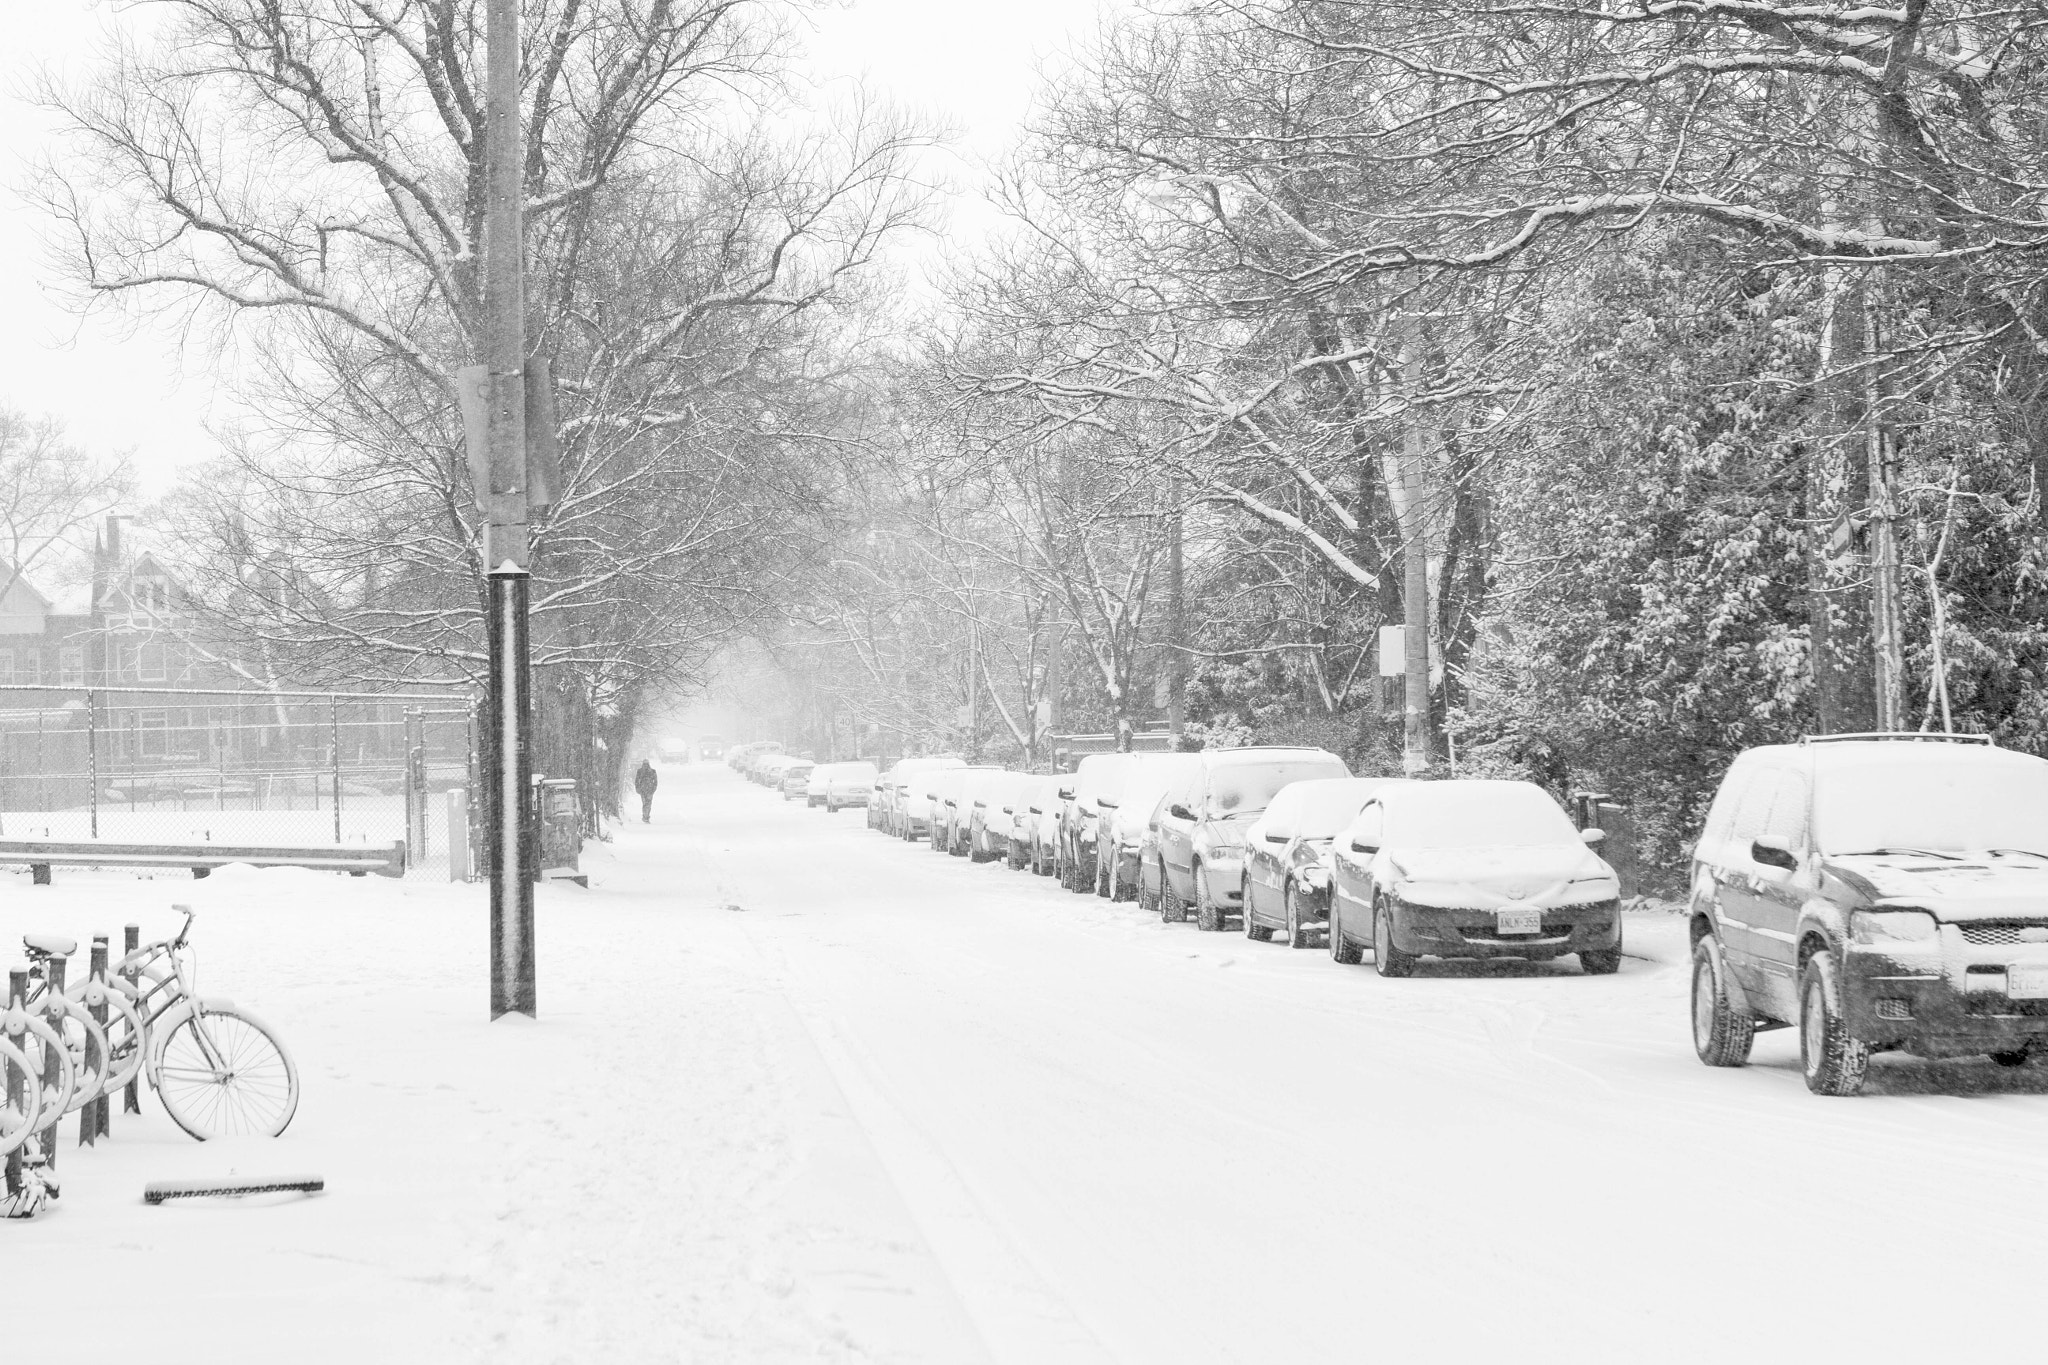 Photograph Snowfall in Toronto by Ash Furrow on 500px